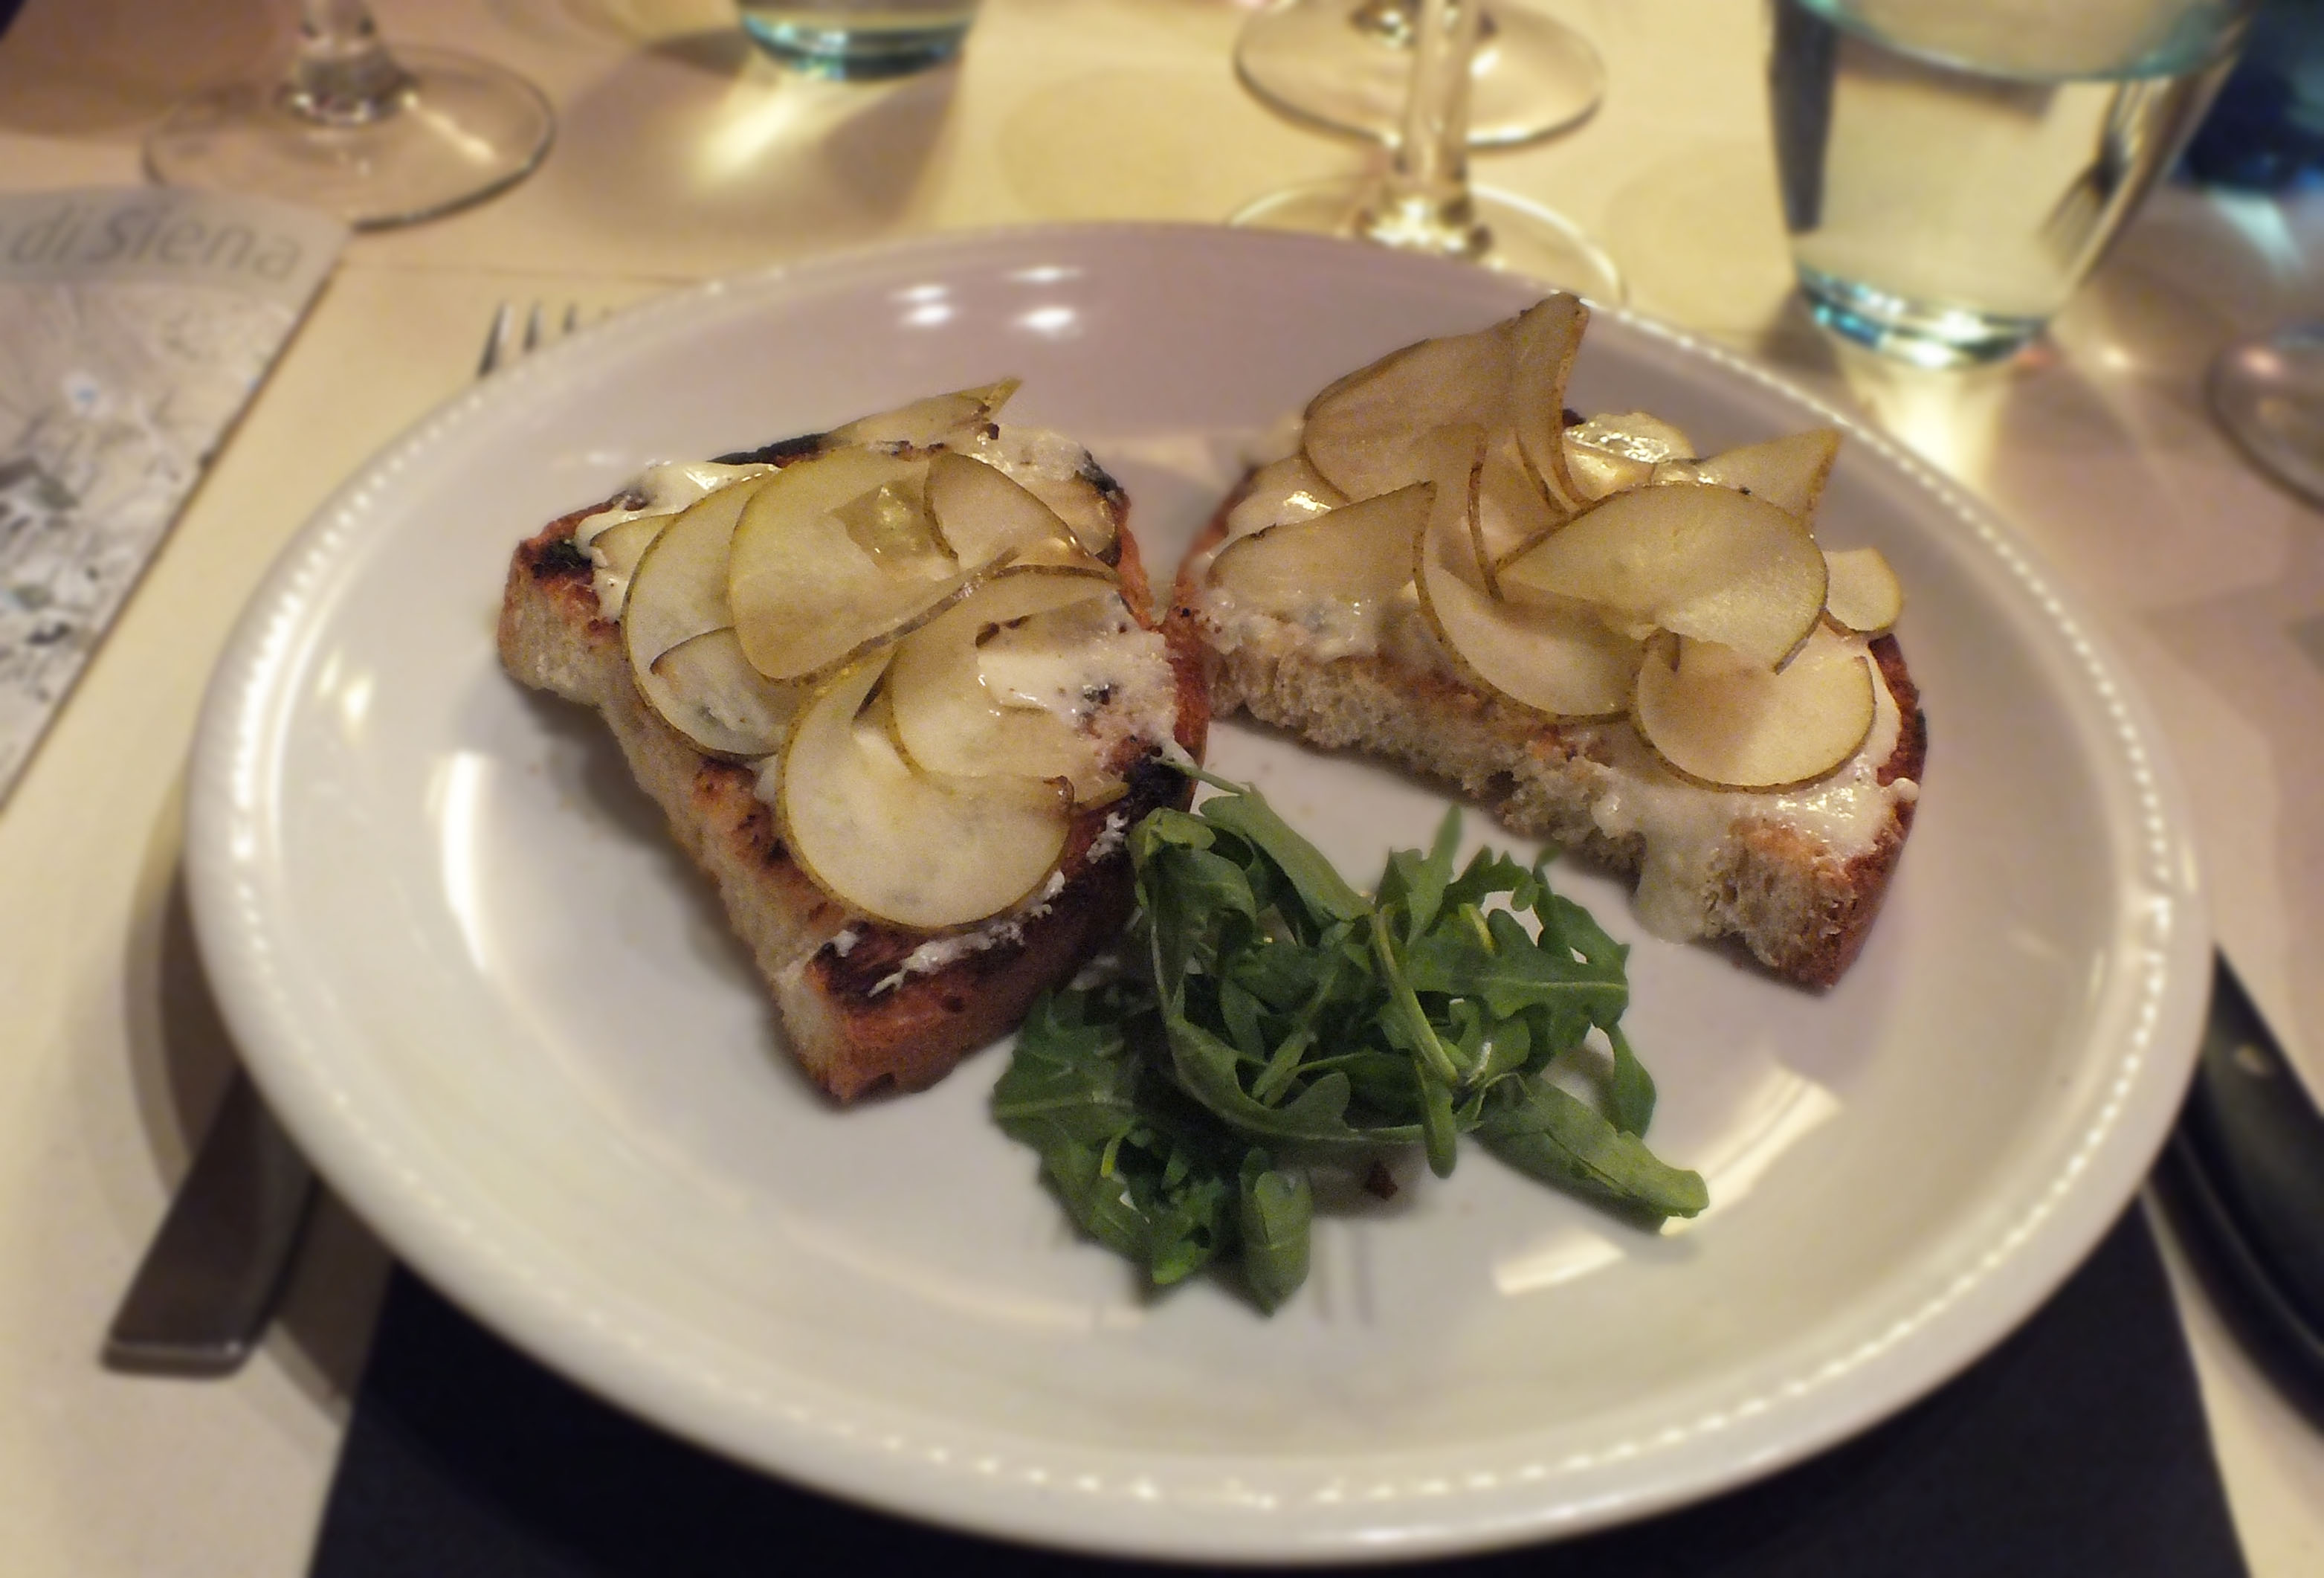 Then Gorgonzola, honey and pear which tasted as splendid as it looked ...